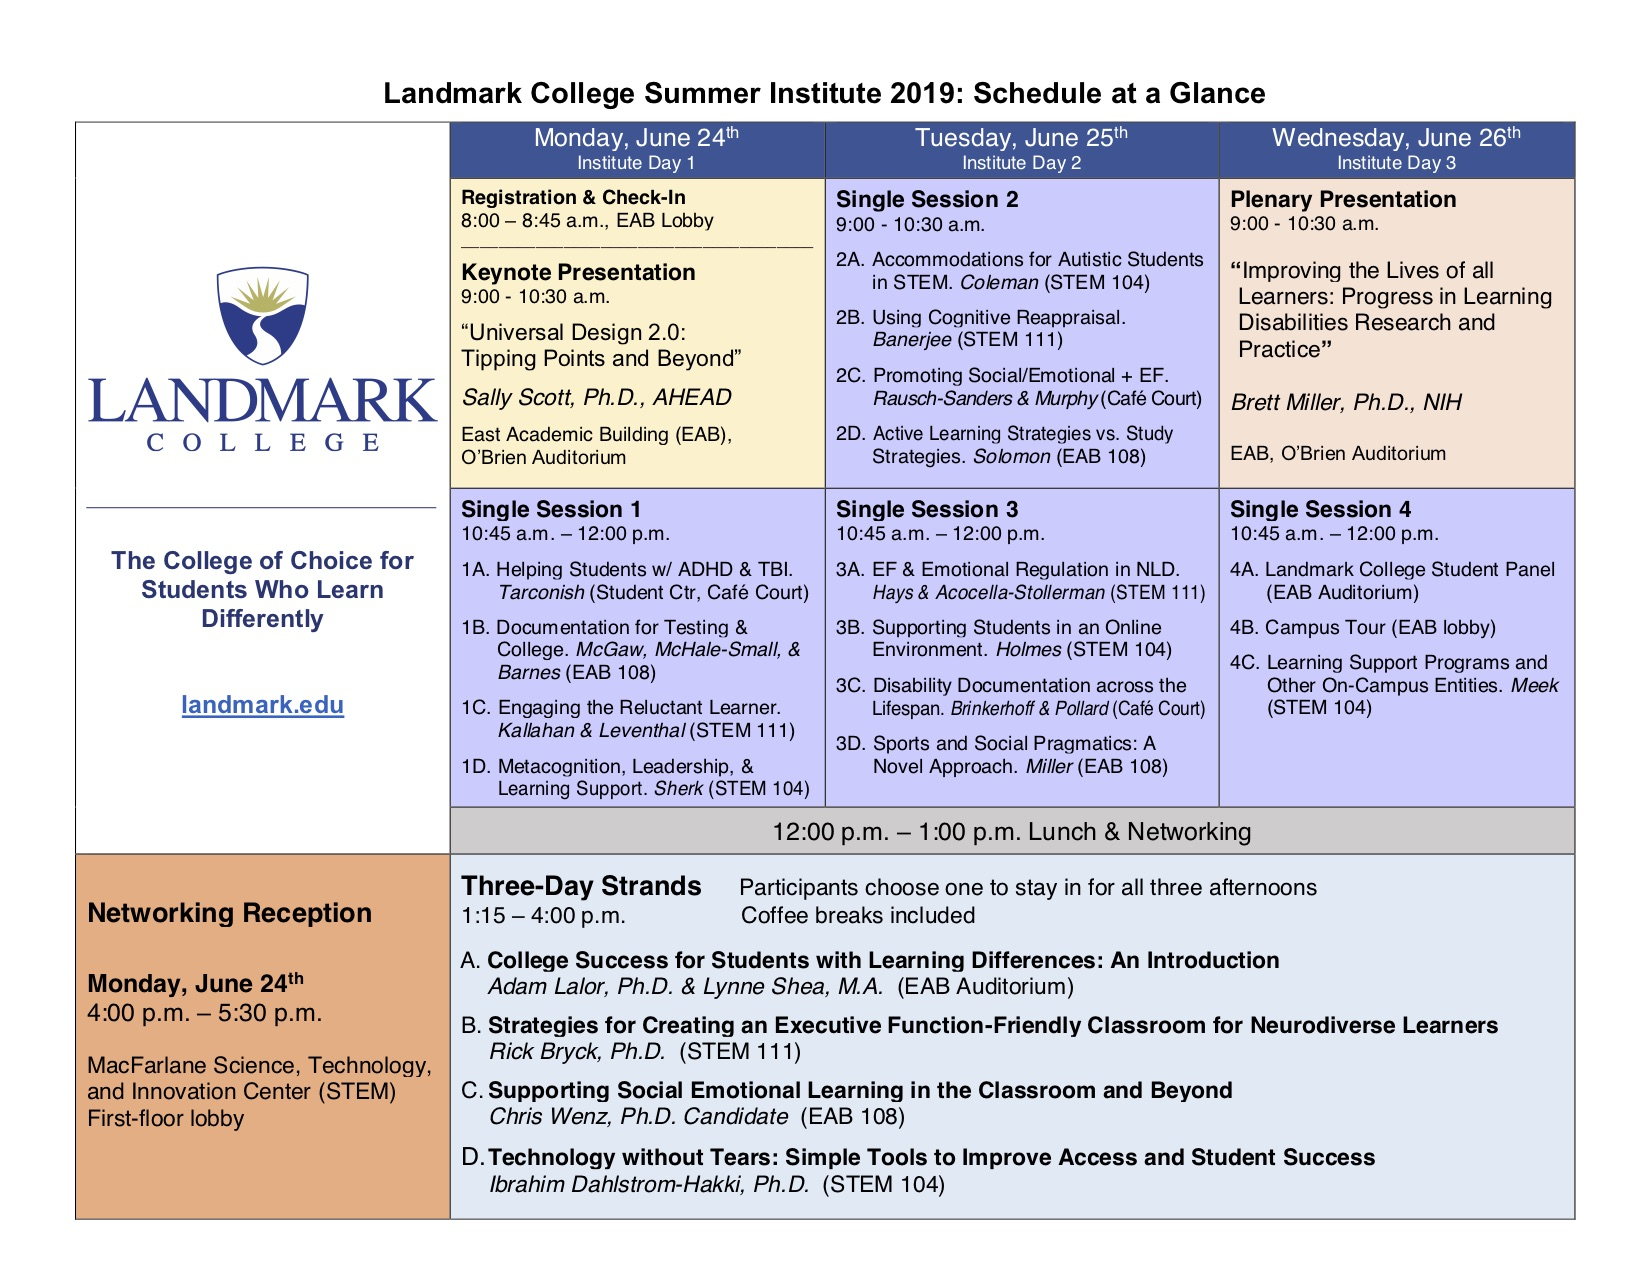 Landmark College Summer Institute 2019 Schedule Overview